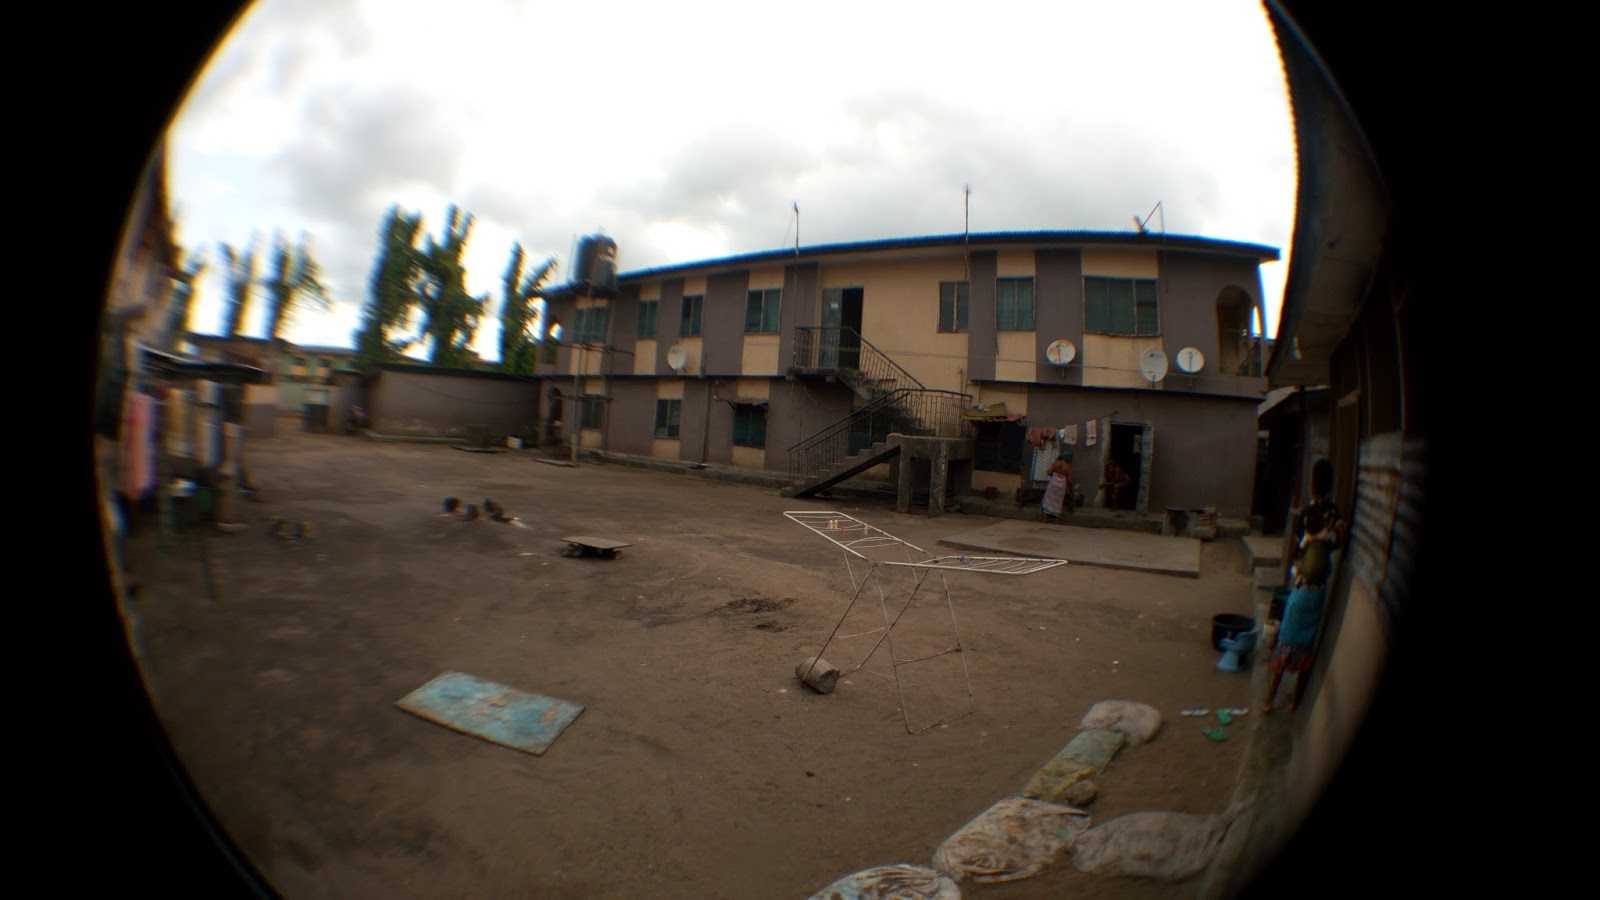 Another picture taken with fish eye lens